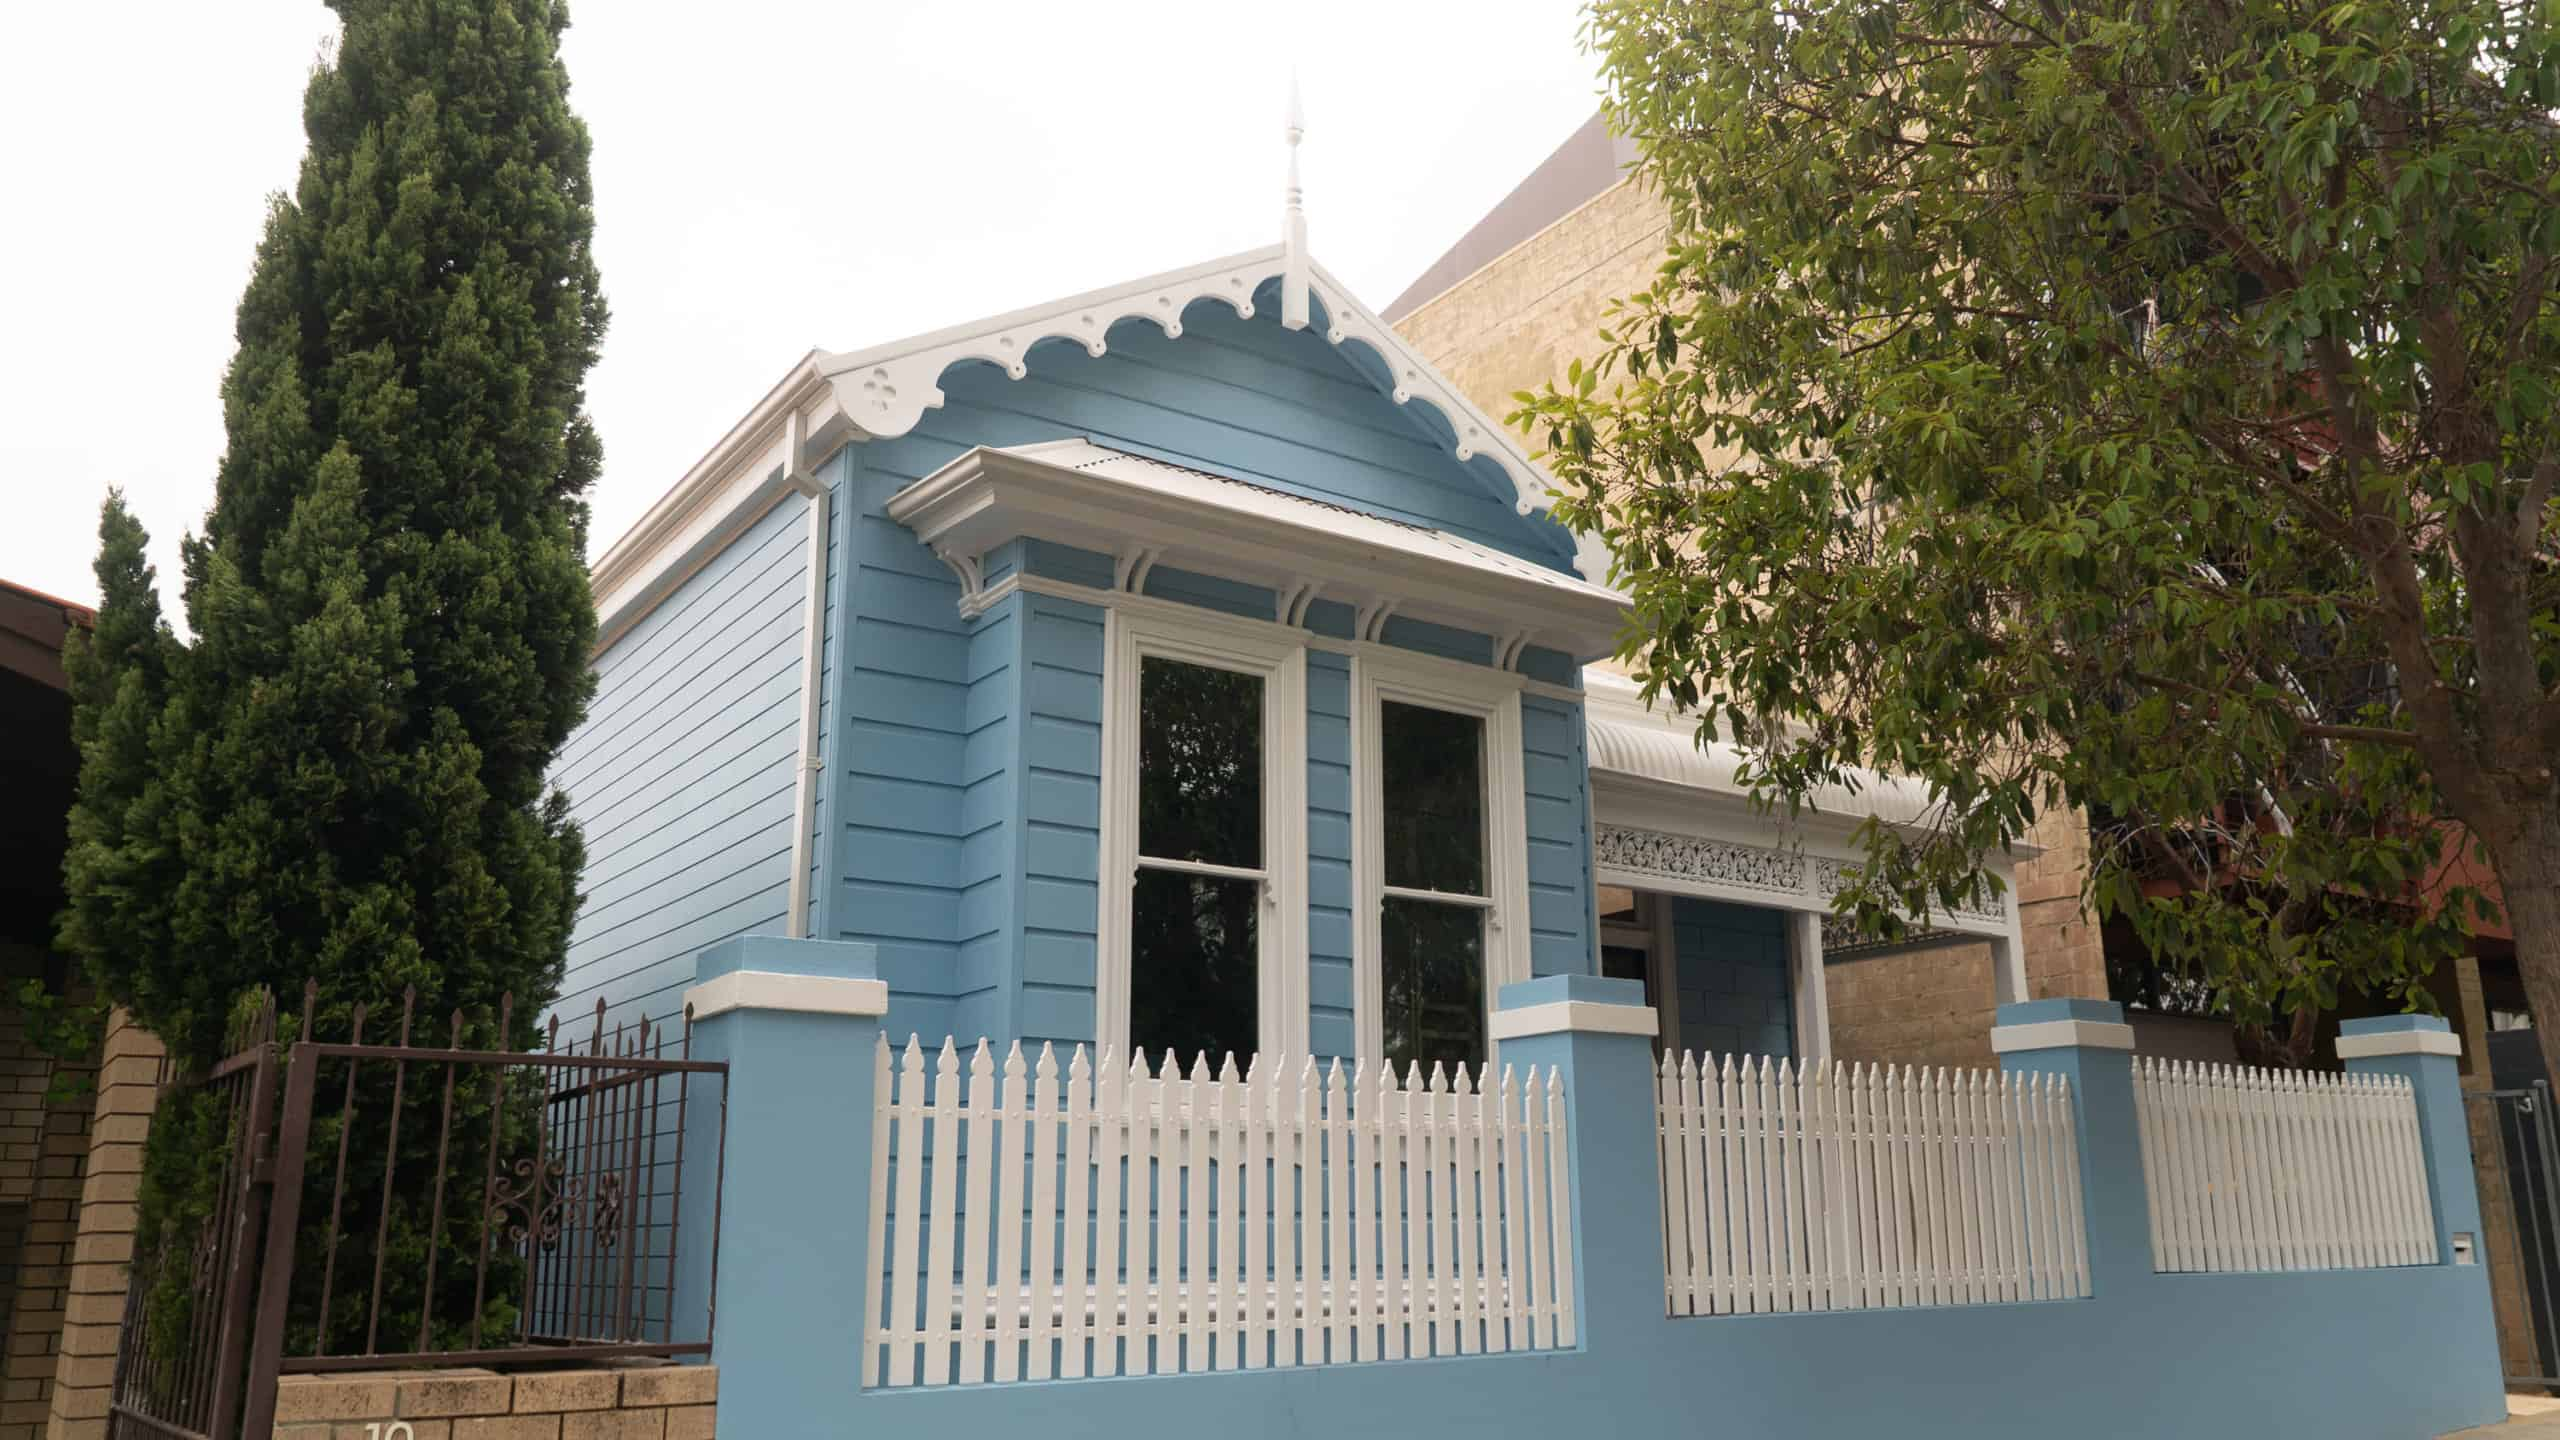 The exterior of a freshly painted, wooden exterior residential property